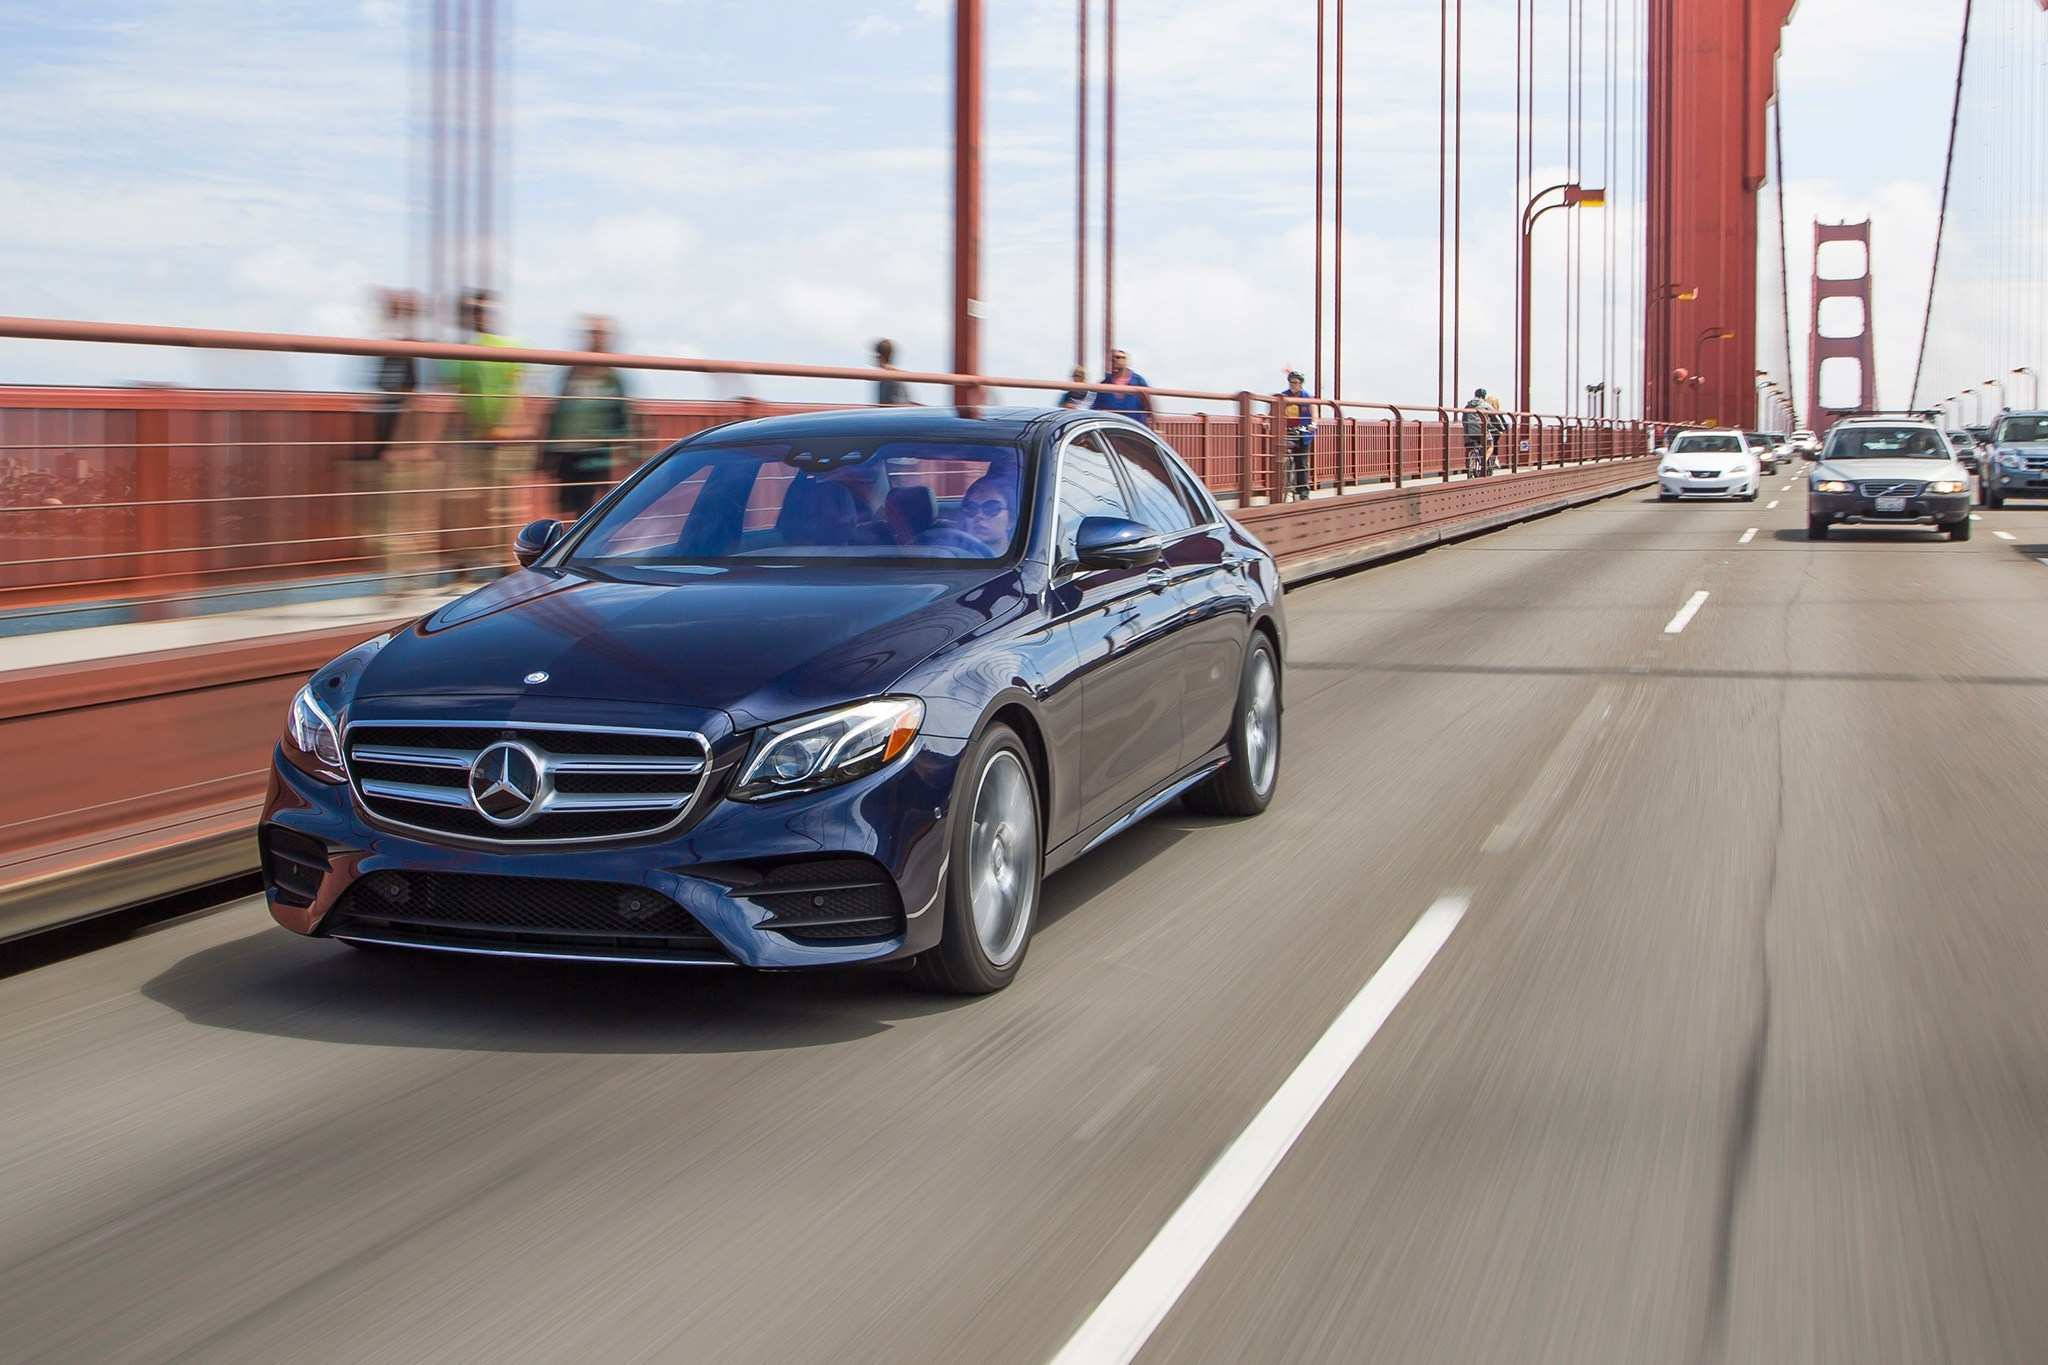 93 Great The E300 Mercedes 2019 Specs Research New with The E300 Mercedes 2019 Specs